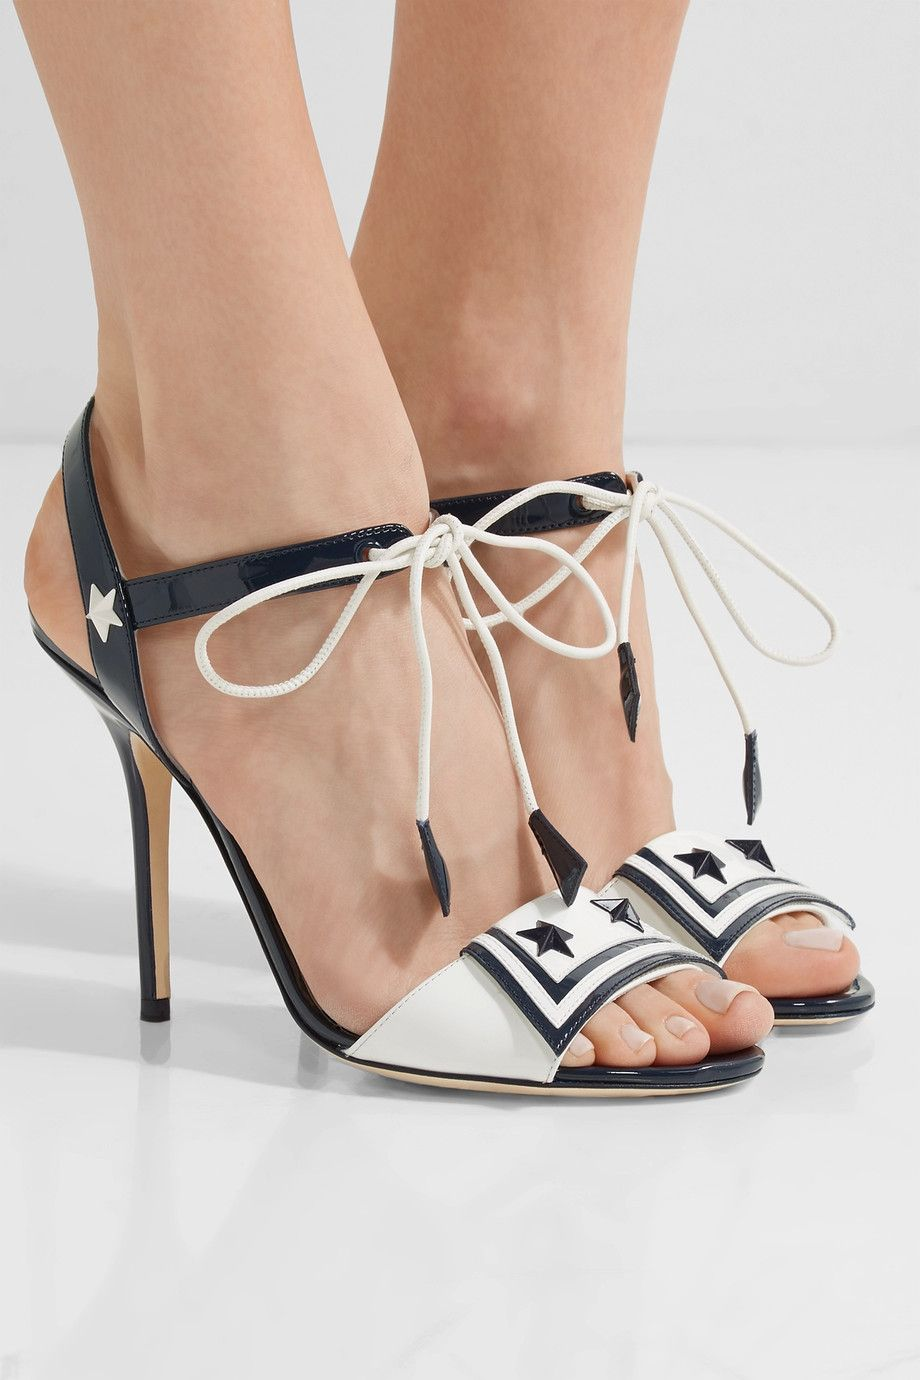 buy cheap browse outlet wide range of D&G Embellished Patent Leather Sandals 4LXztf